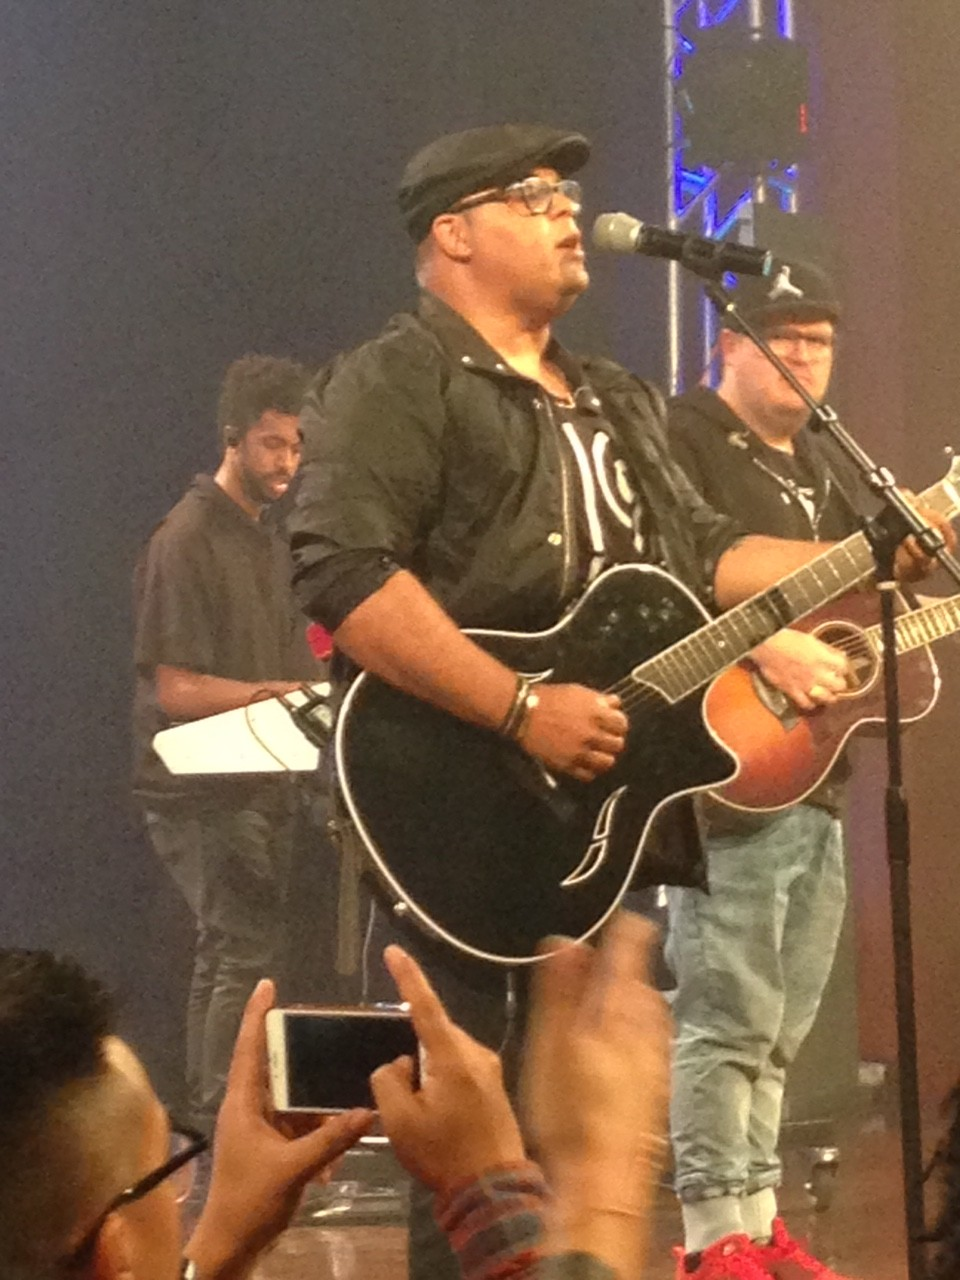 """Having Israel Houghton & BJ Wilmoth in the room last night at the """"Heart Revolution INFLUENCE"""" Conf. was an unexpected treat!"""